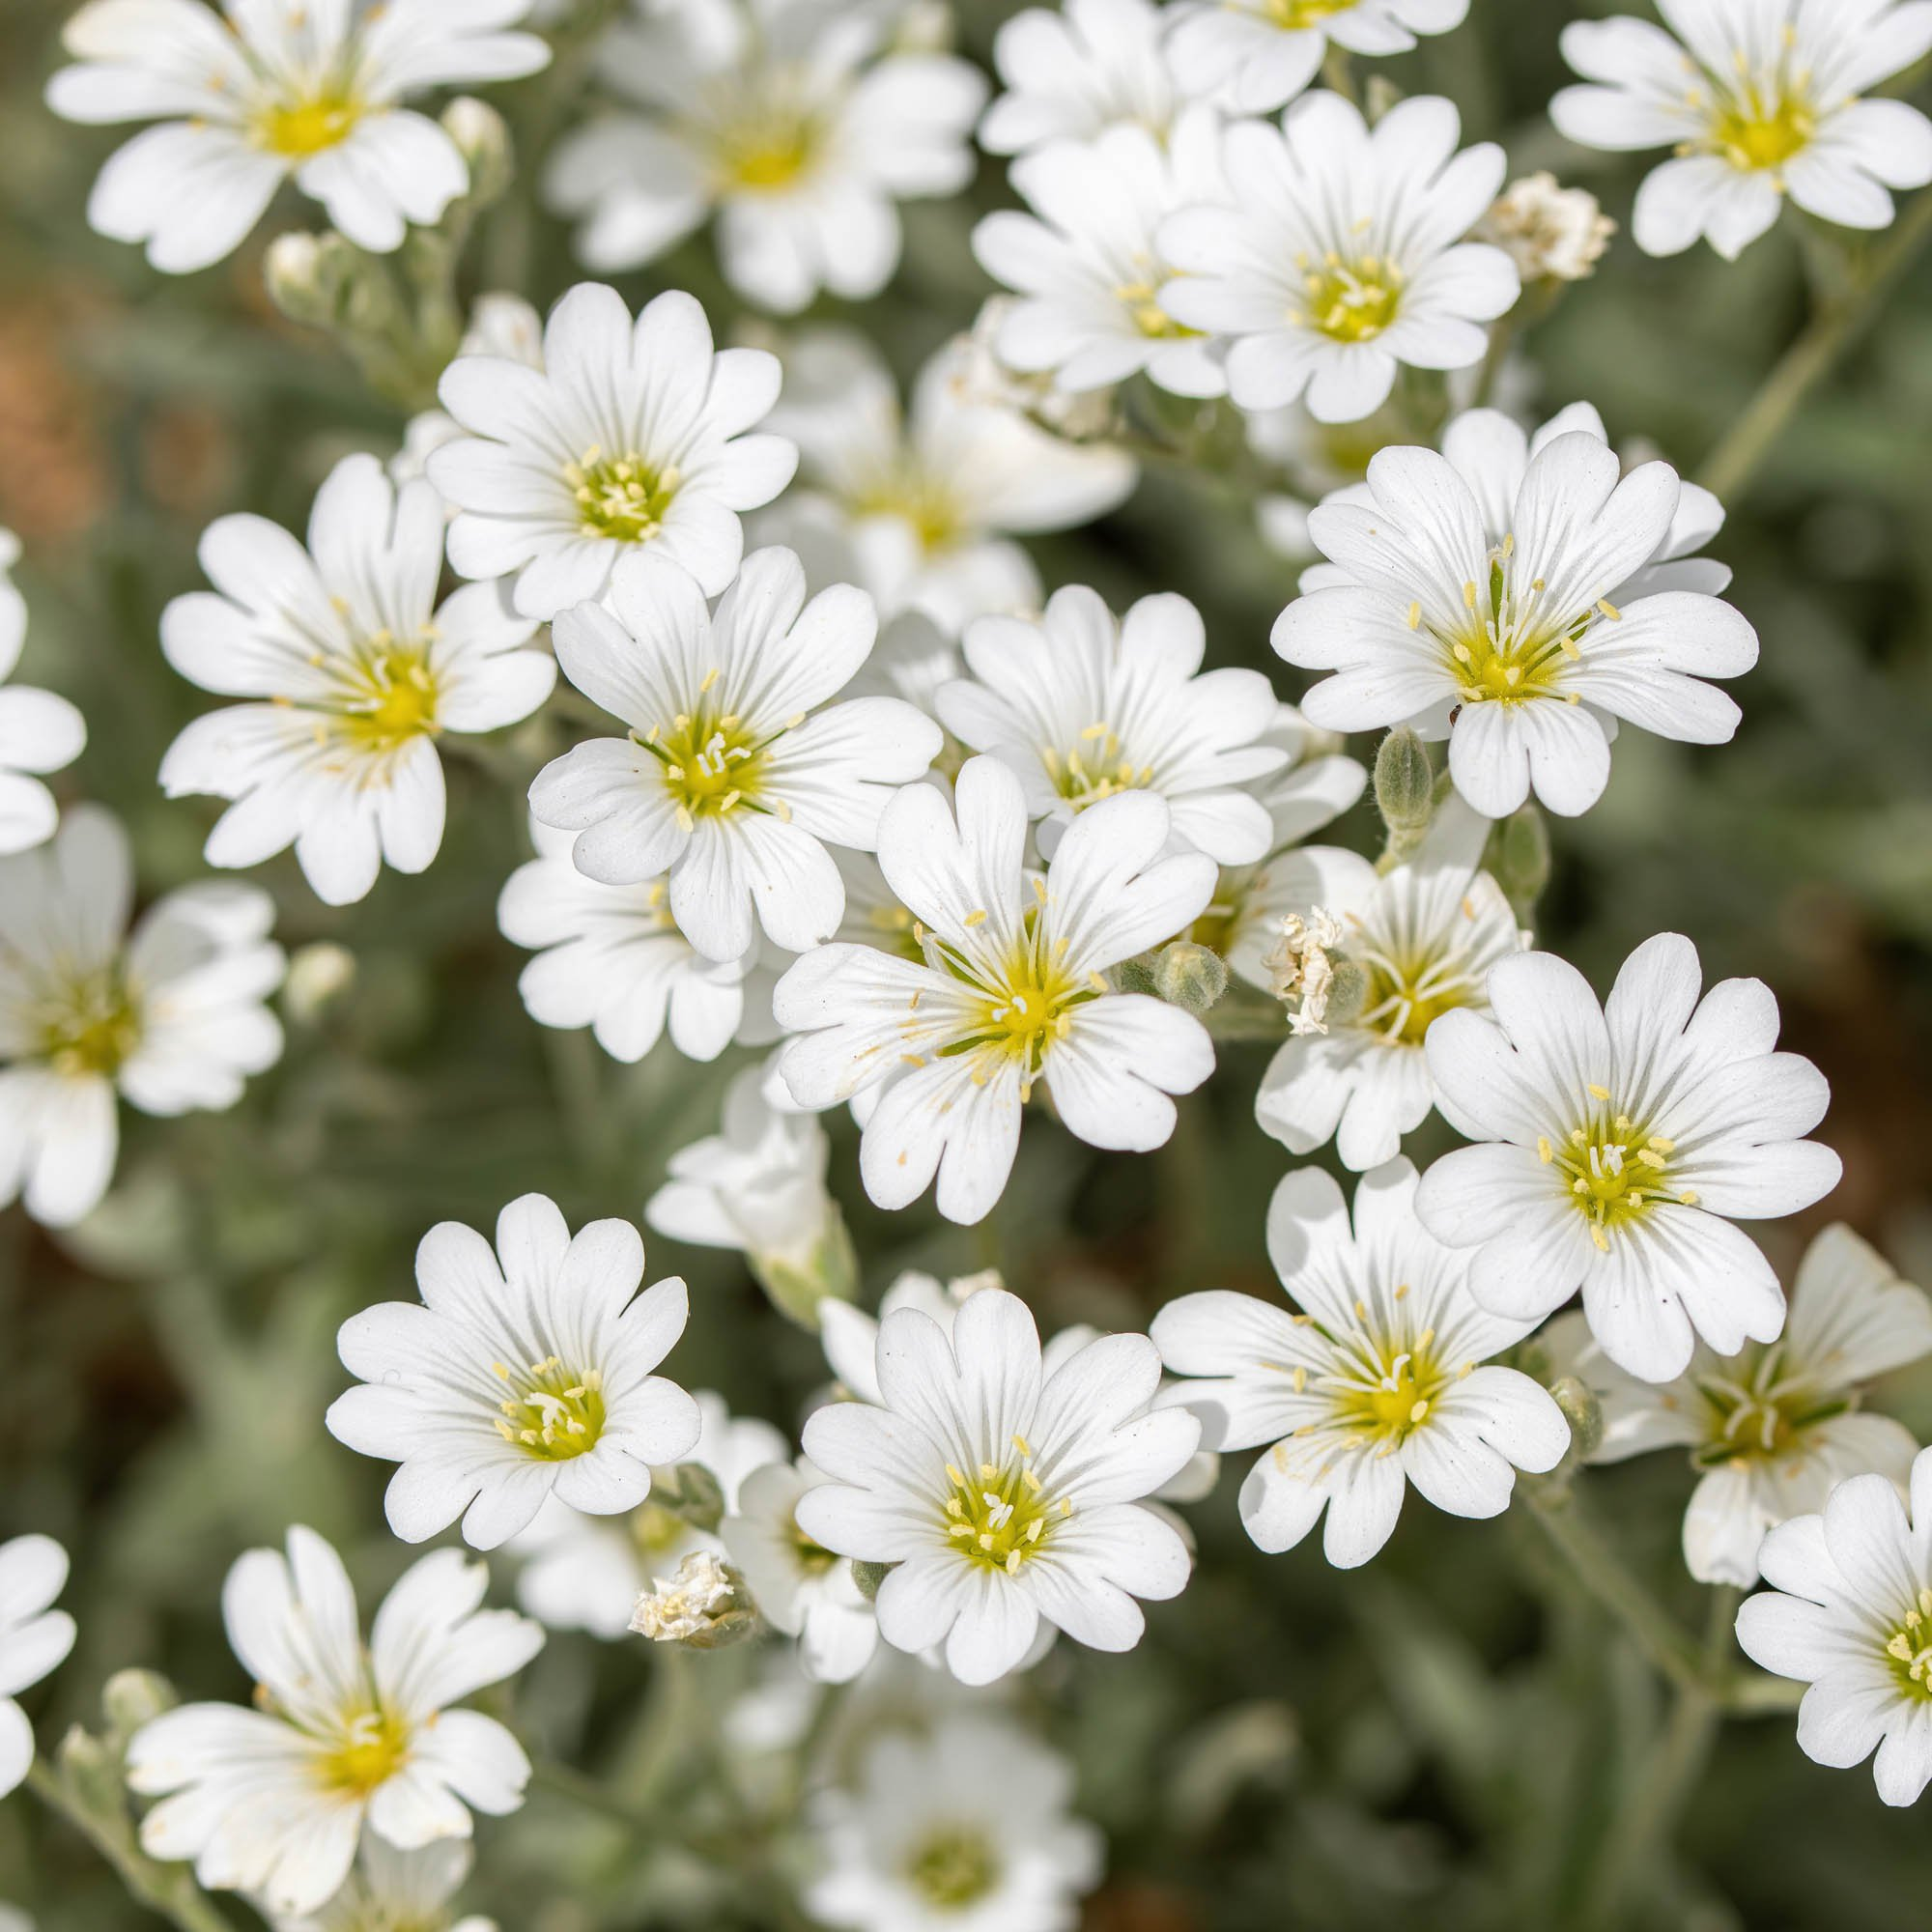 Dianthus seed dianthus arenarius white ground cover seeds mightylinksfo